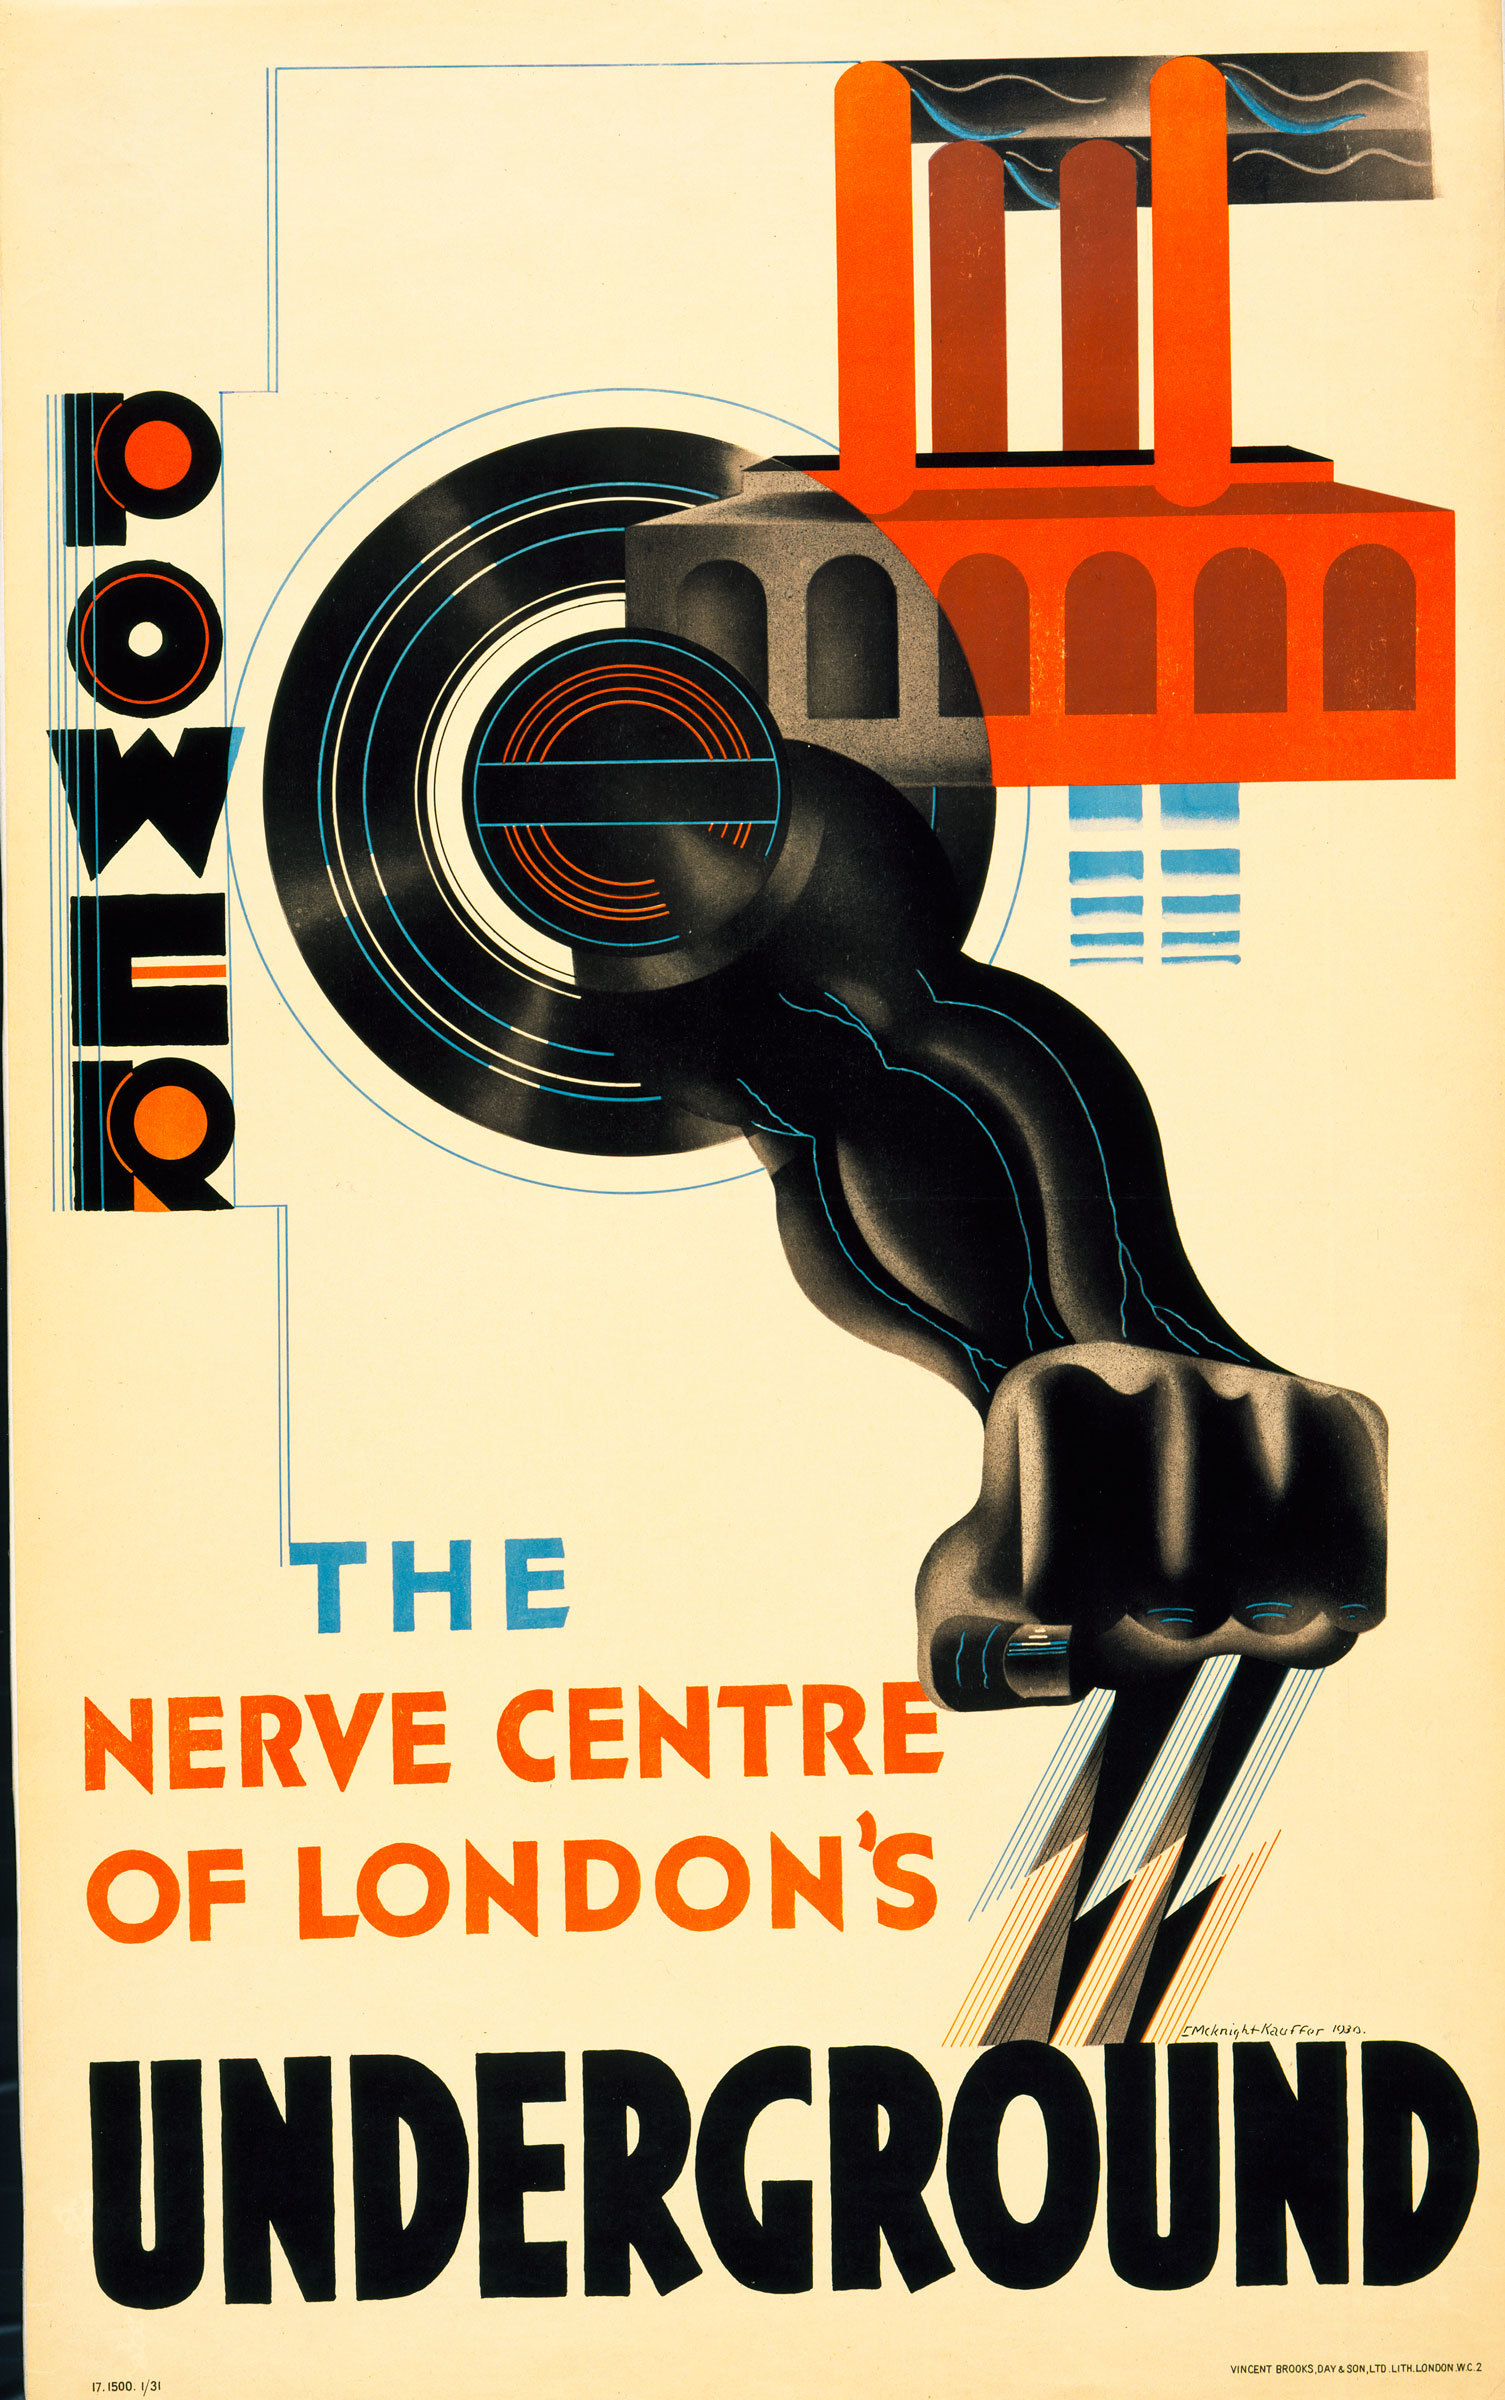 E. McKnight Kauffer. Power, The Nerve Centre of London's Underground. 1930. Lithograph, 40 5/8 × 24 3/4″ (103.2 × 62.9cm). The Museum of Modern Art, New York. Gift of the artist